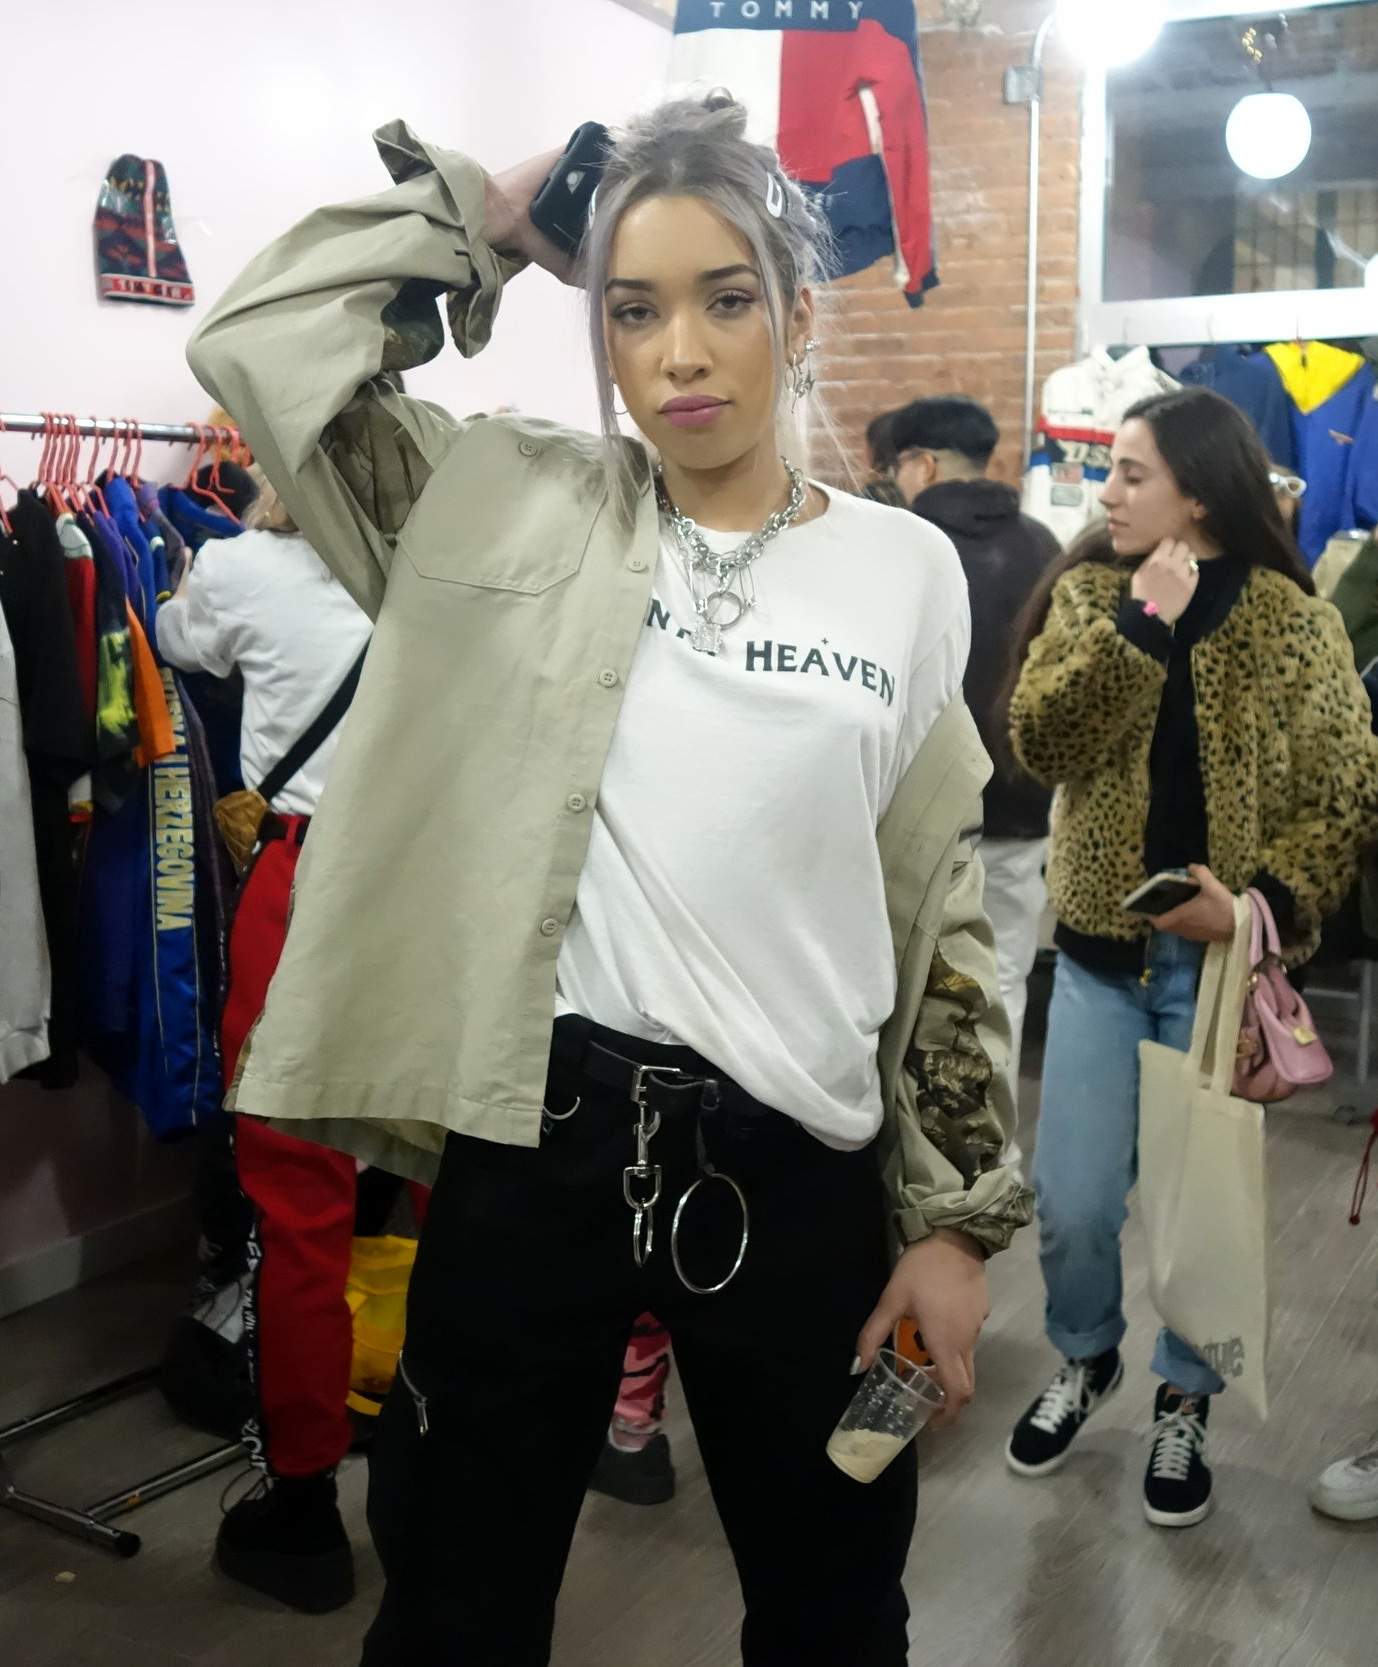 Thrift Party hosted by Tommy/Shot by  Jonathan